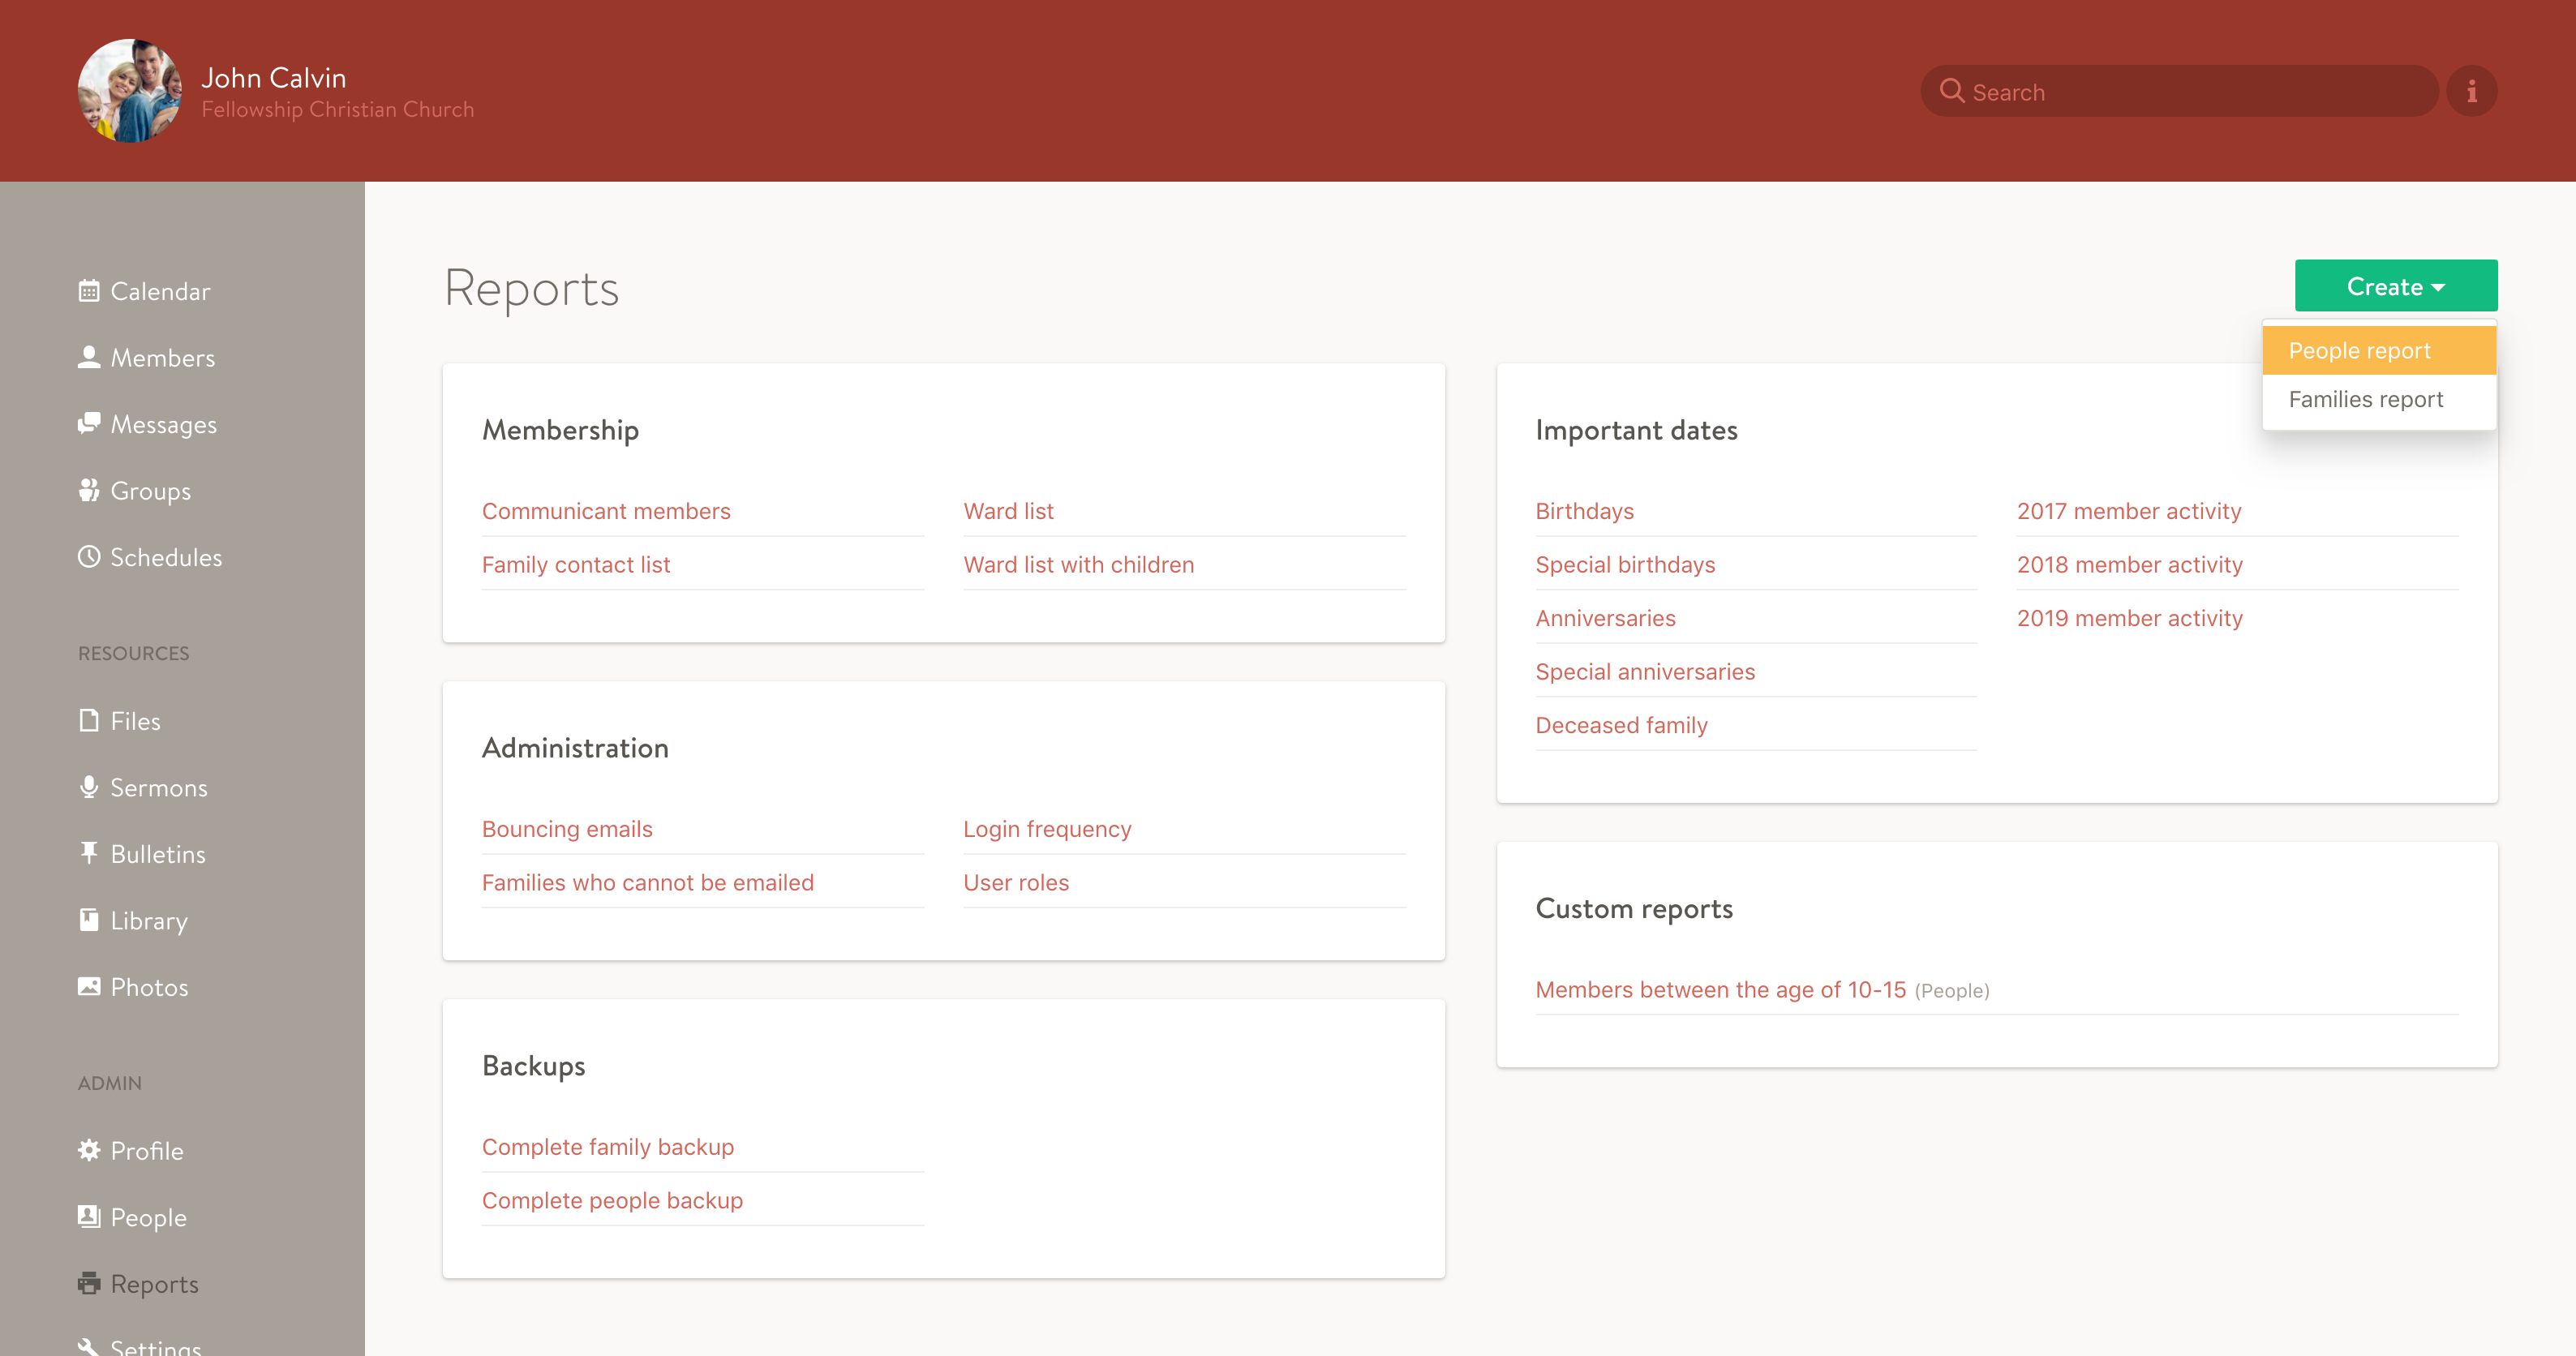 Screenshot of the new reports index page